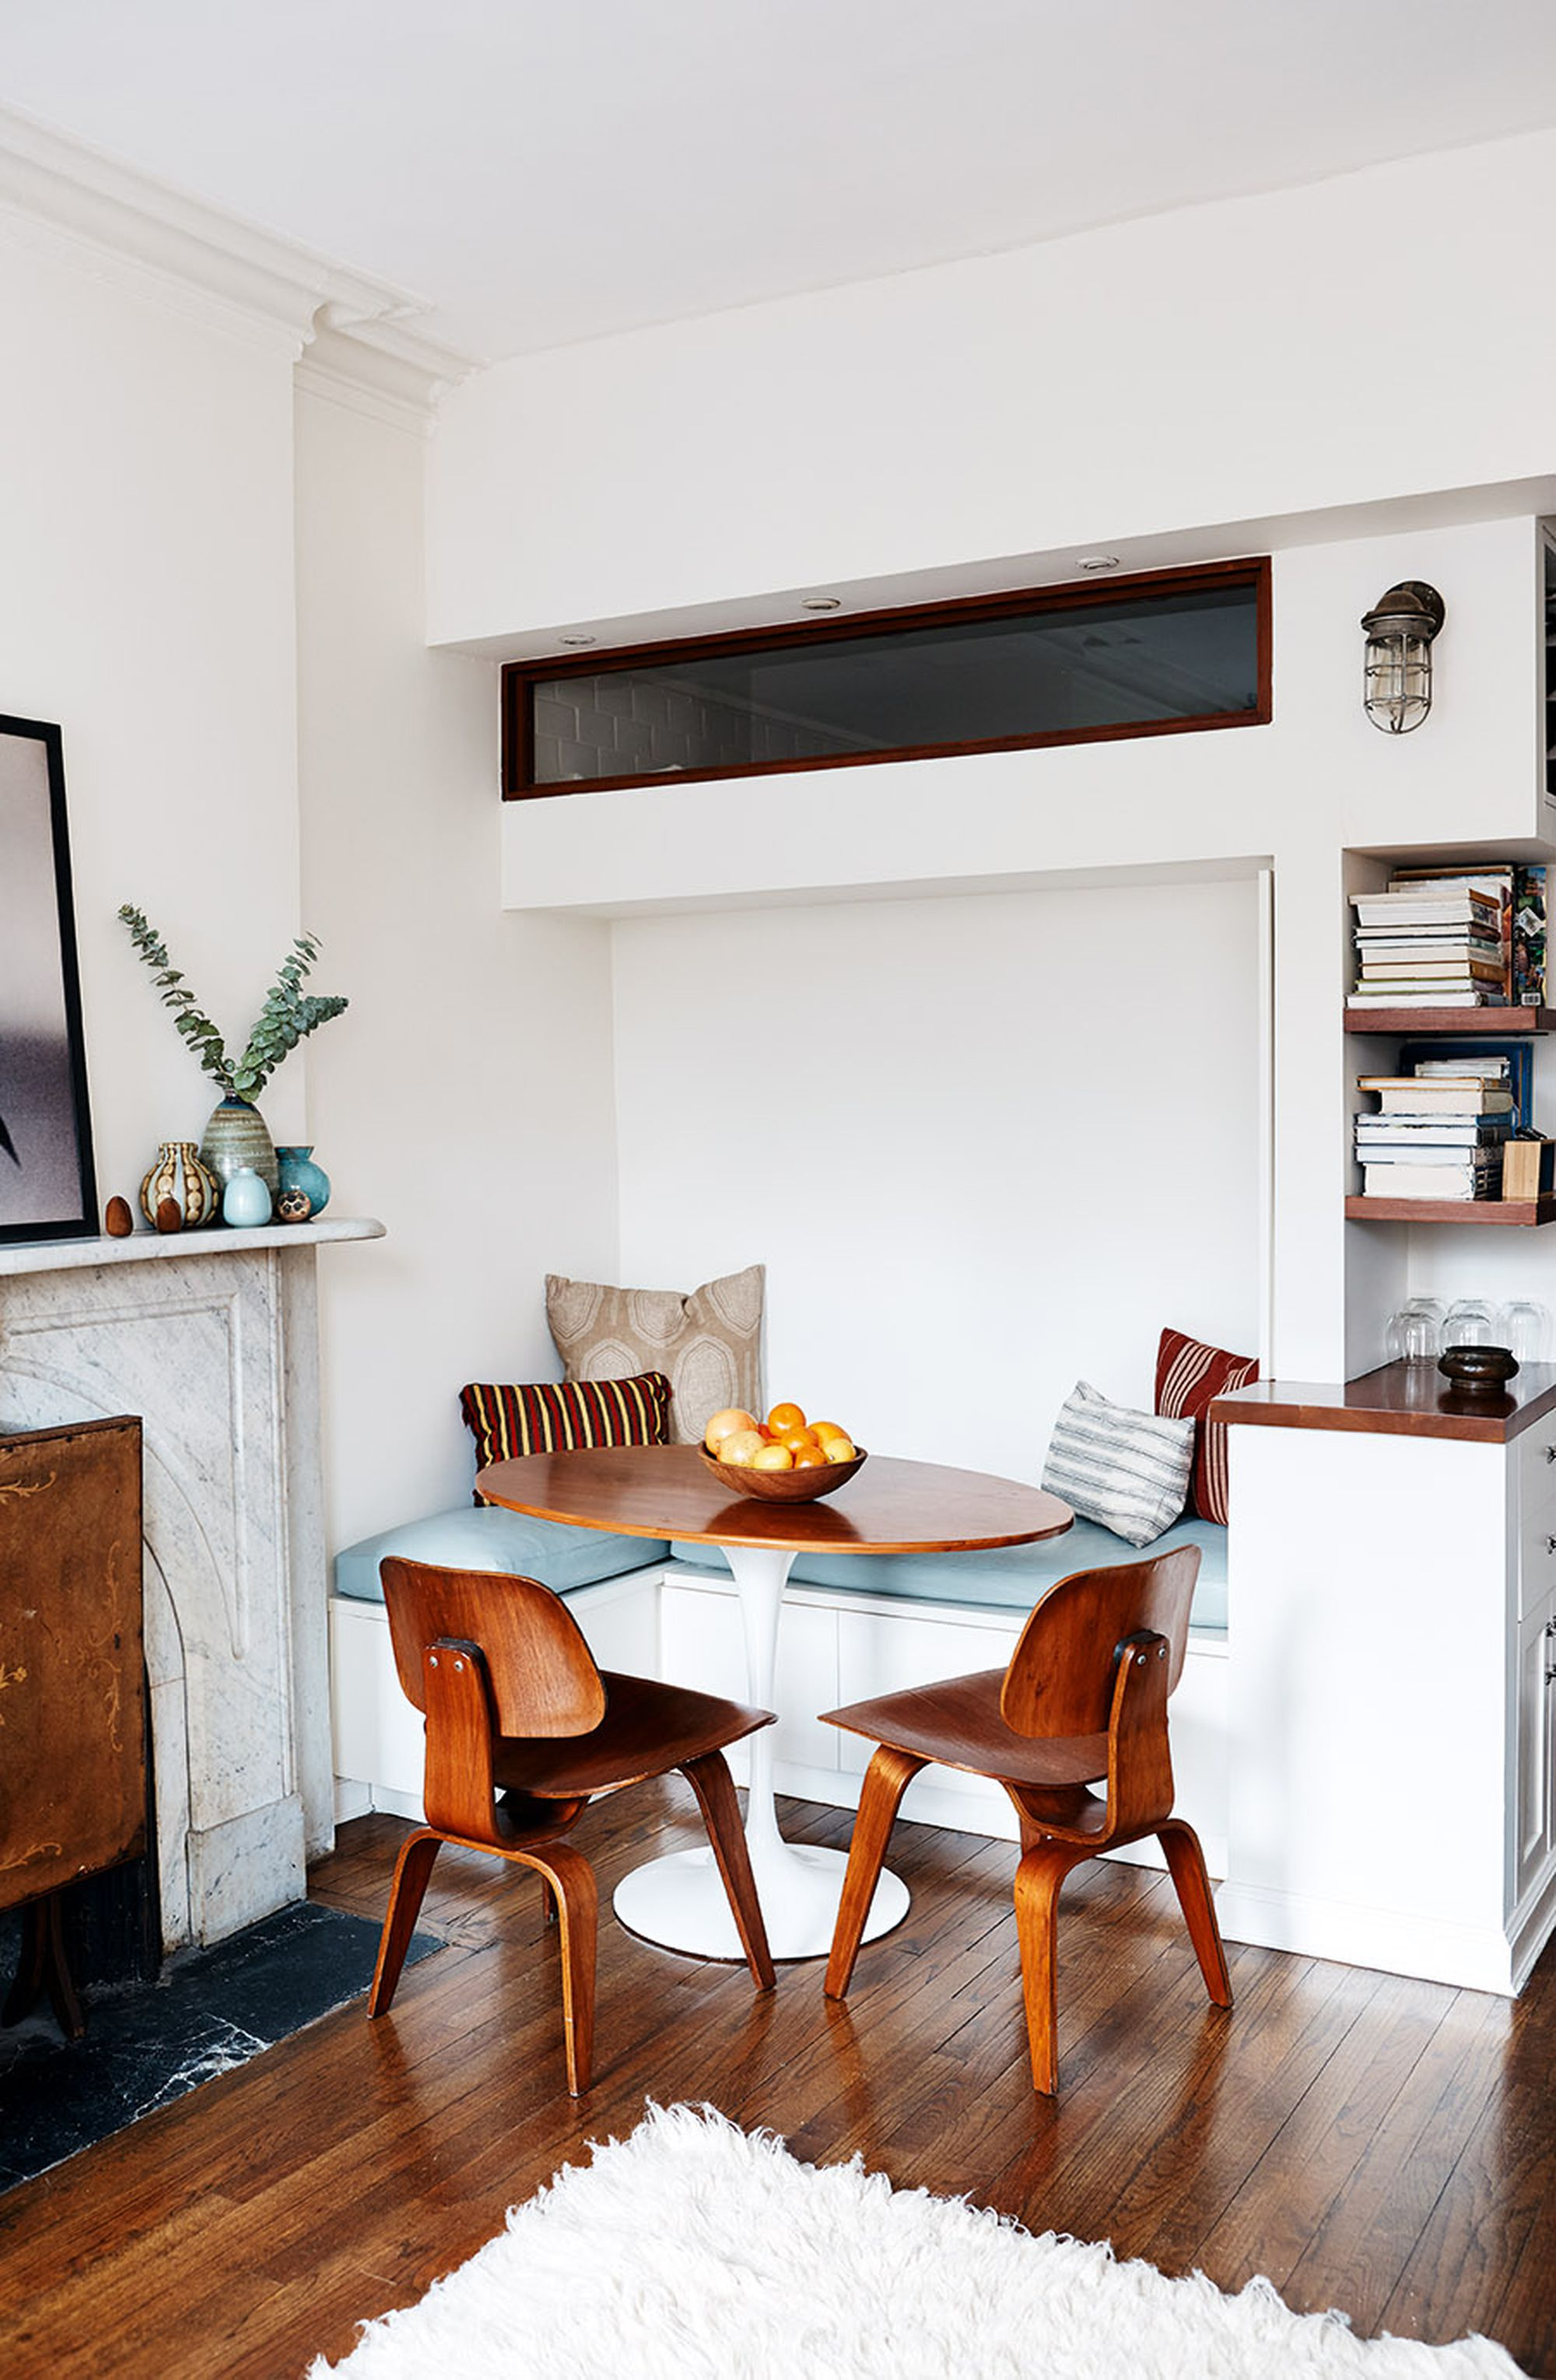 A 355-Square-Foot Apartment That Makes the Most of Every Inch